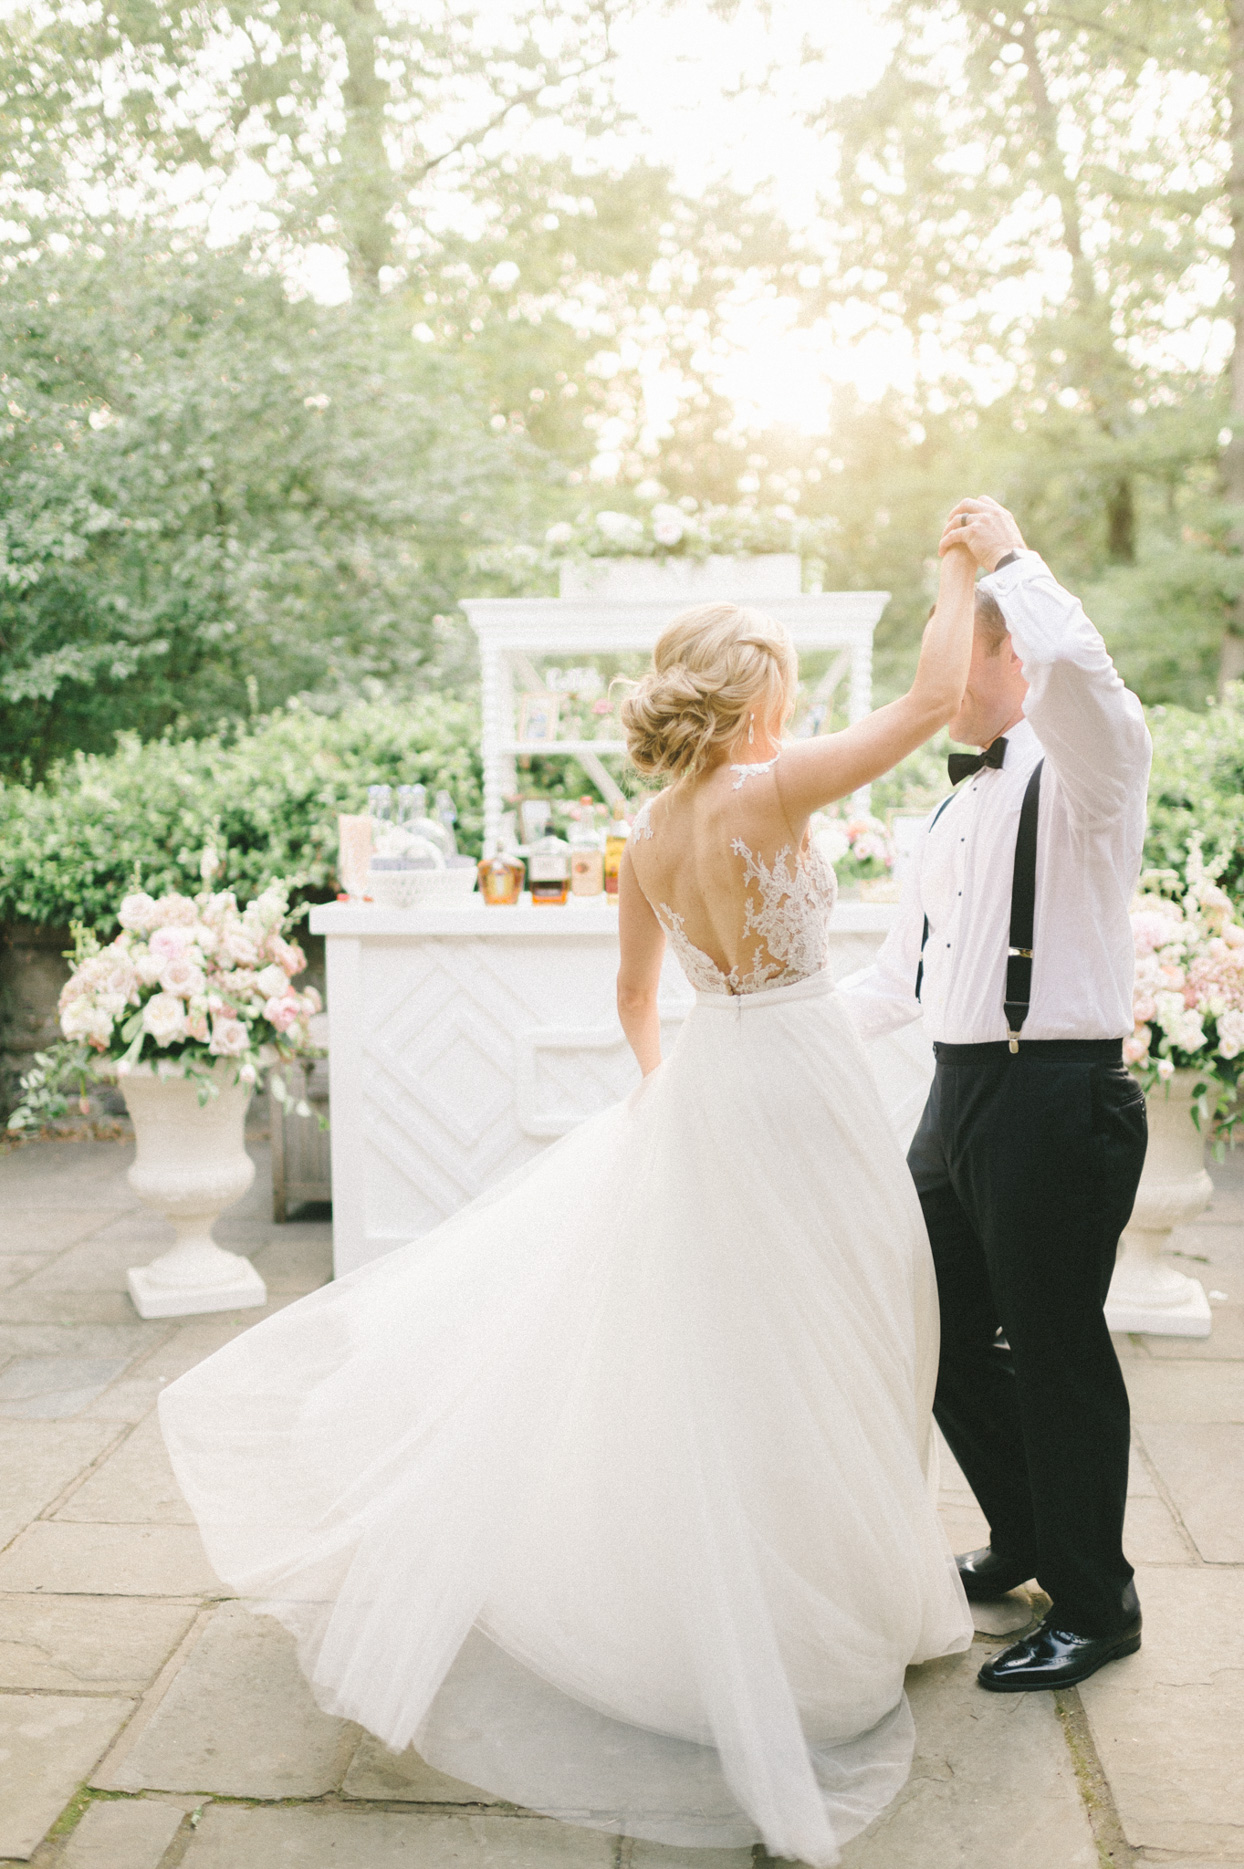 couple dancing on stone patio in front of bar